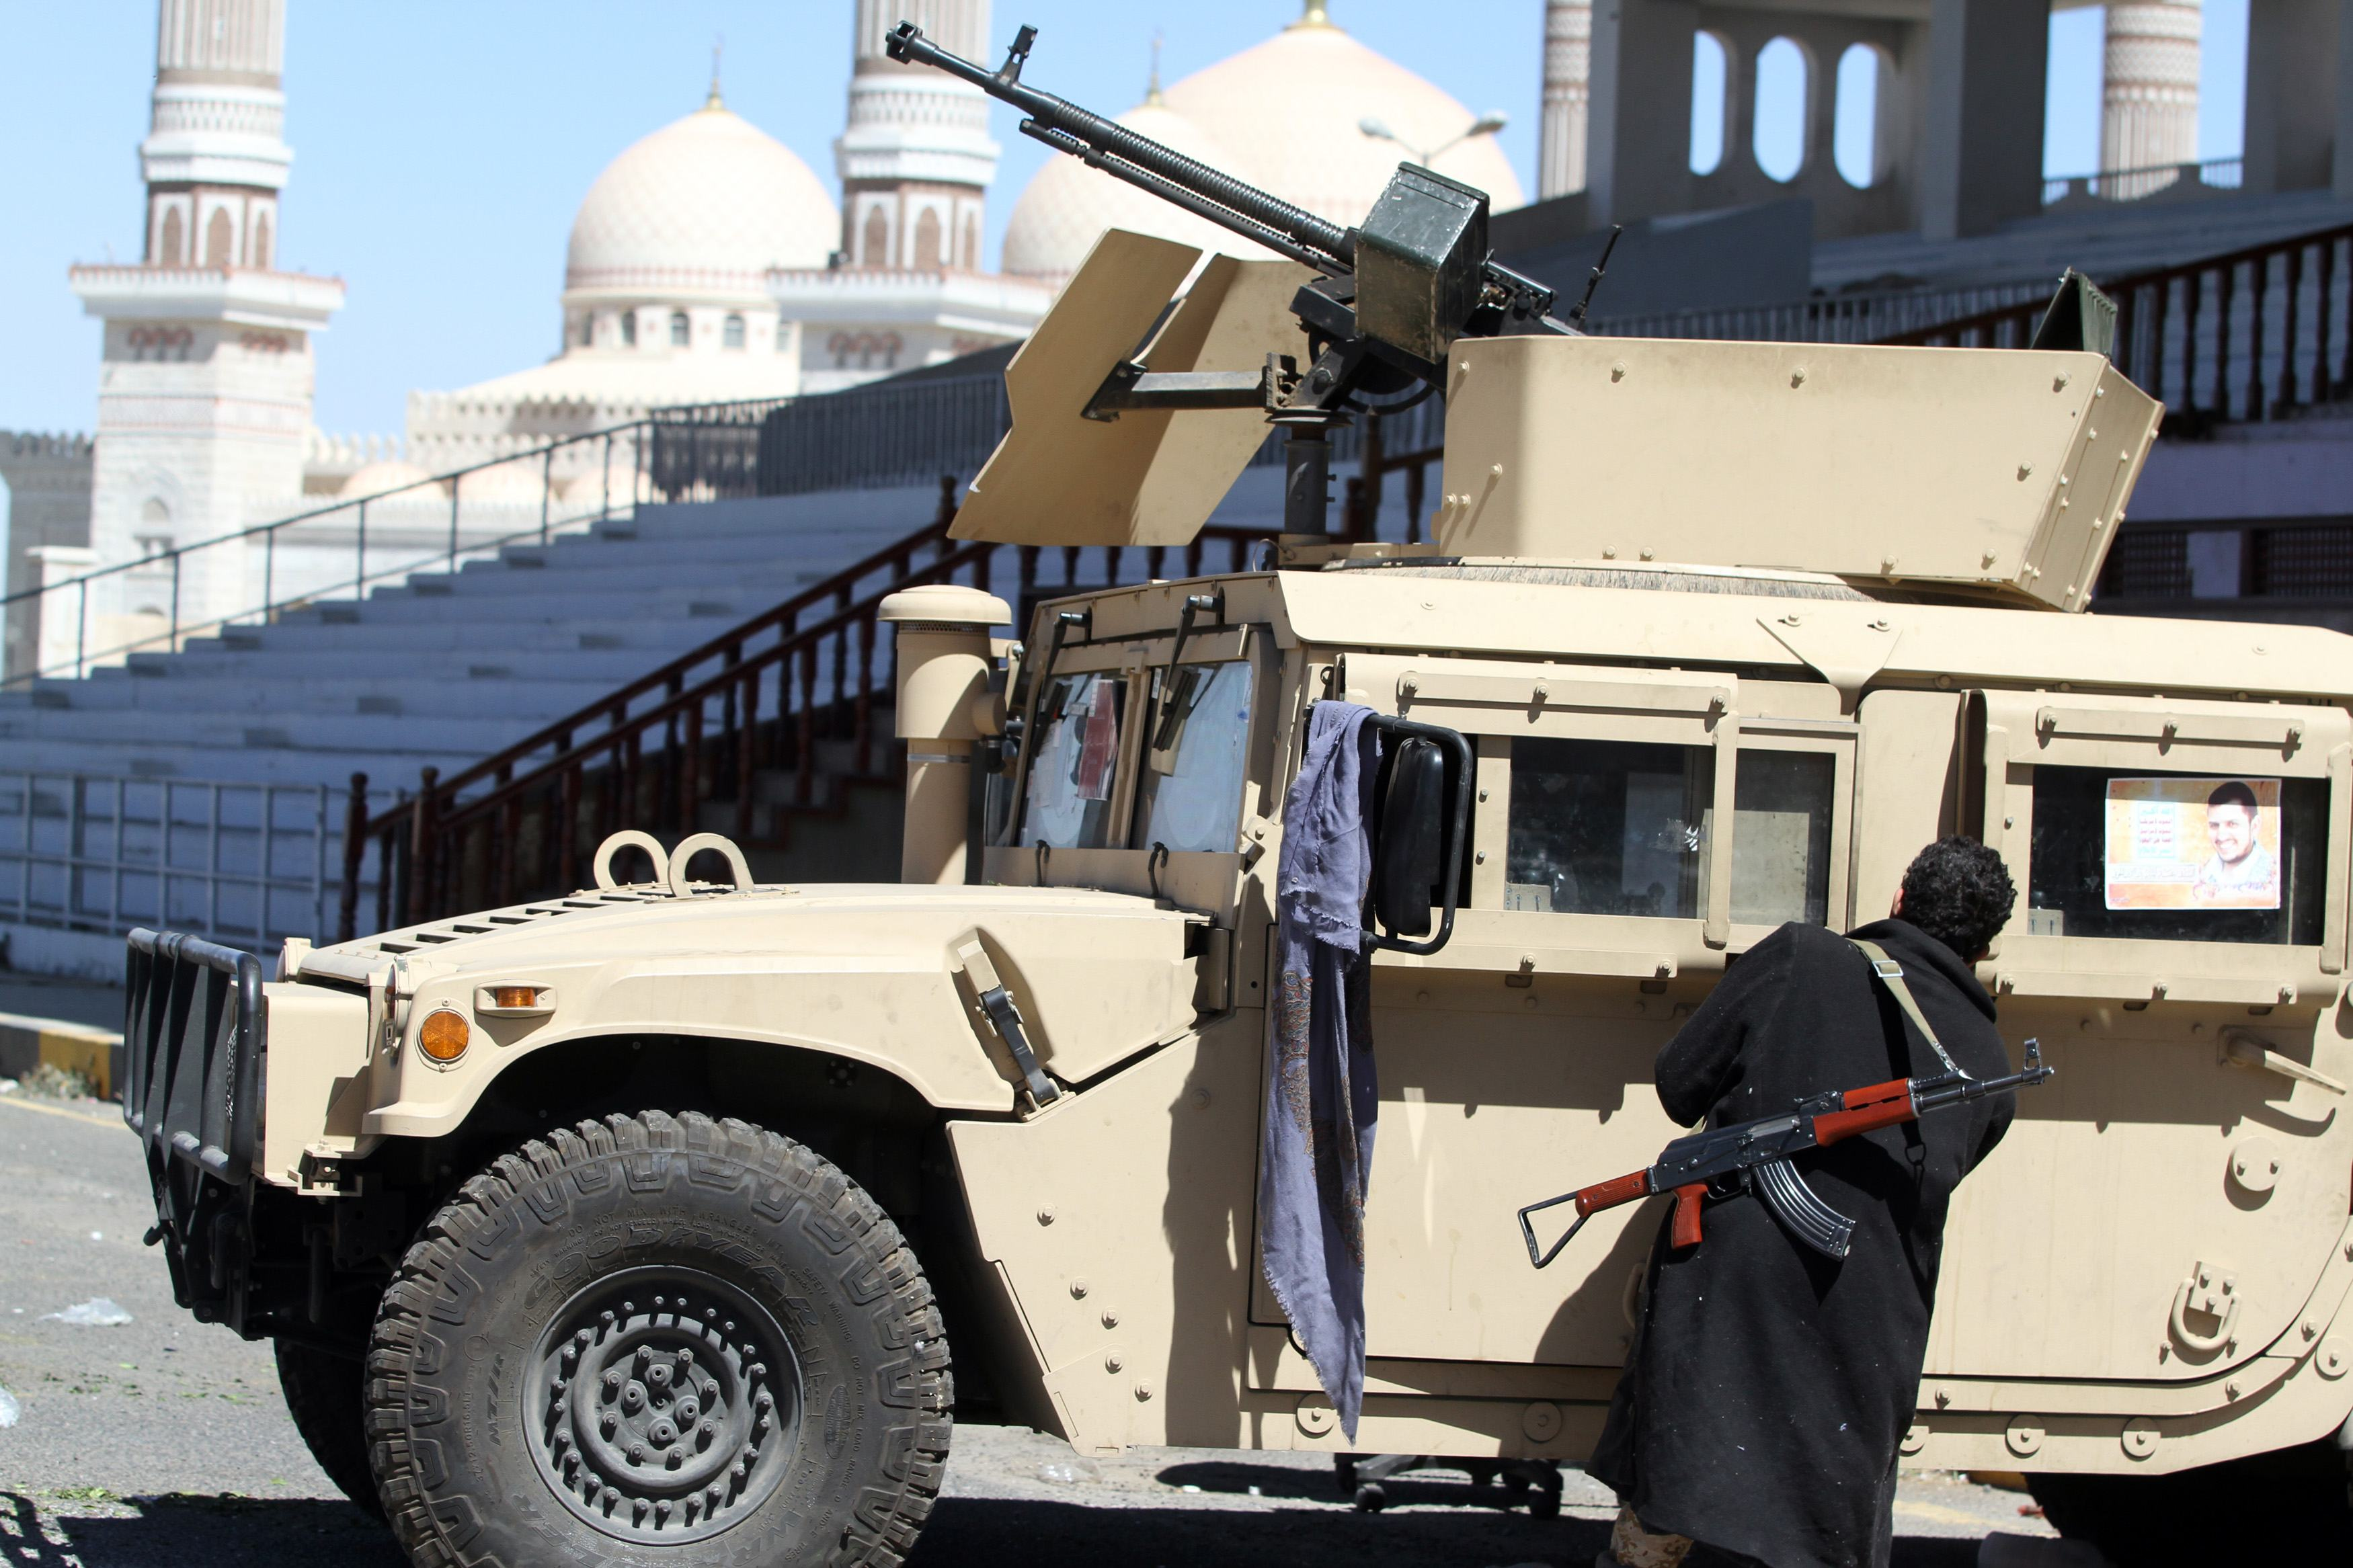 A Houthi fighter opens the door of a military vehicle which was seized from the army during recent clashes, outside an entrance to the presidential palace in Sanaa January 29, 2015.